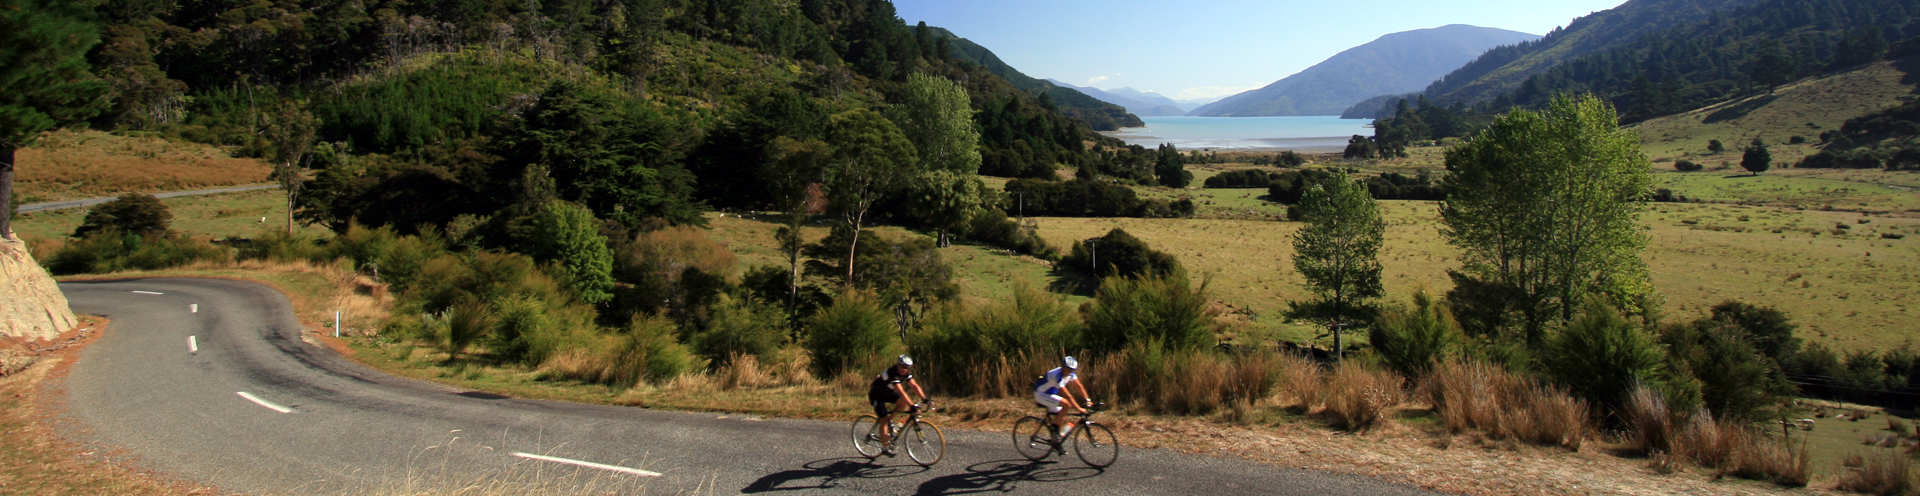 homepage-image-global-cycling-adventures-0902